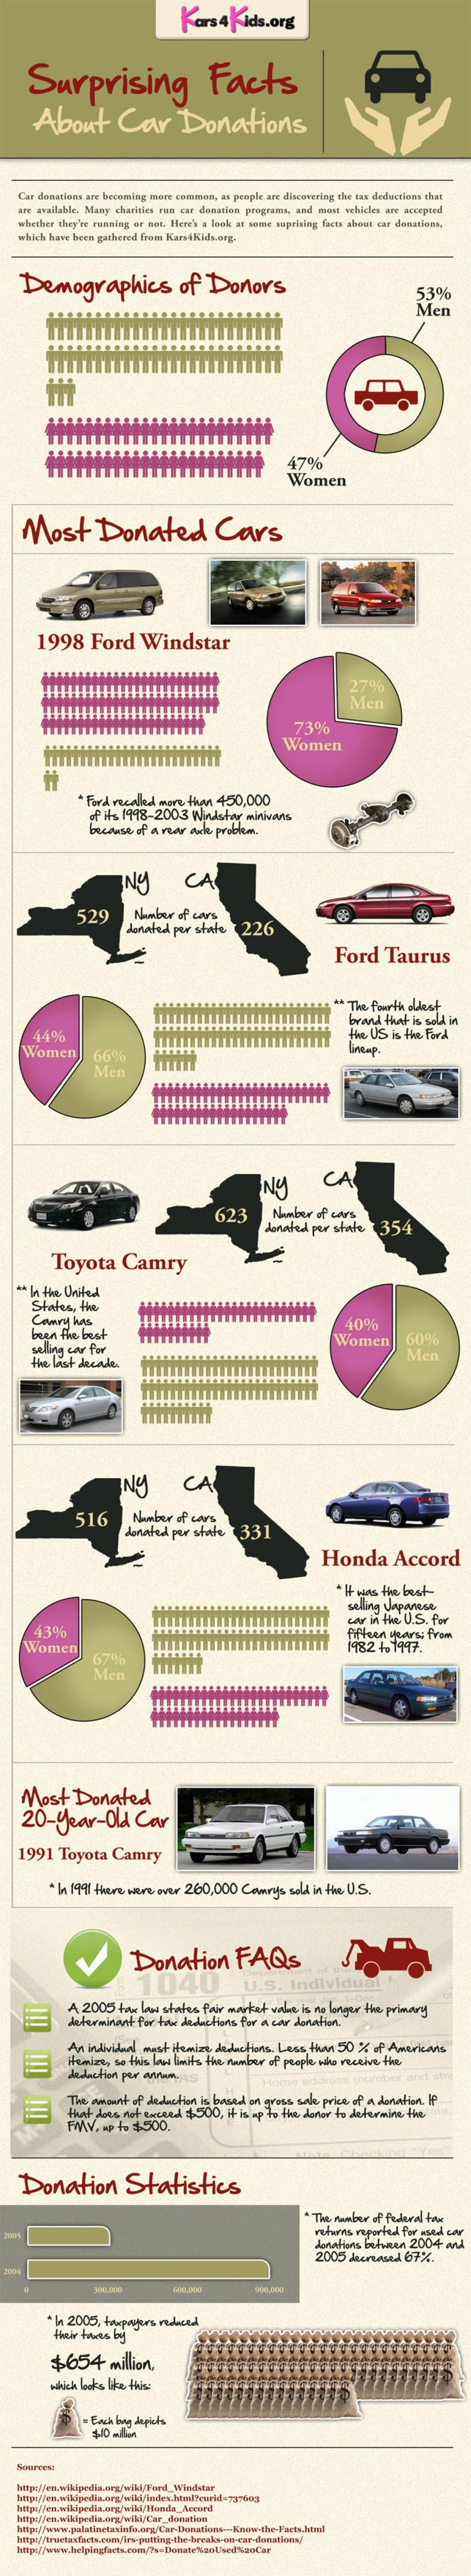 Suprising Facts About Car Donation Infographic